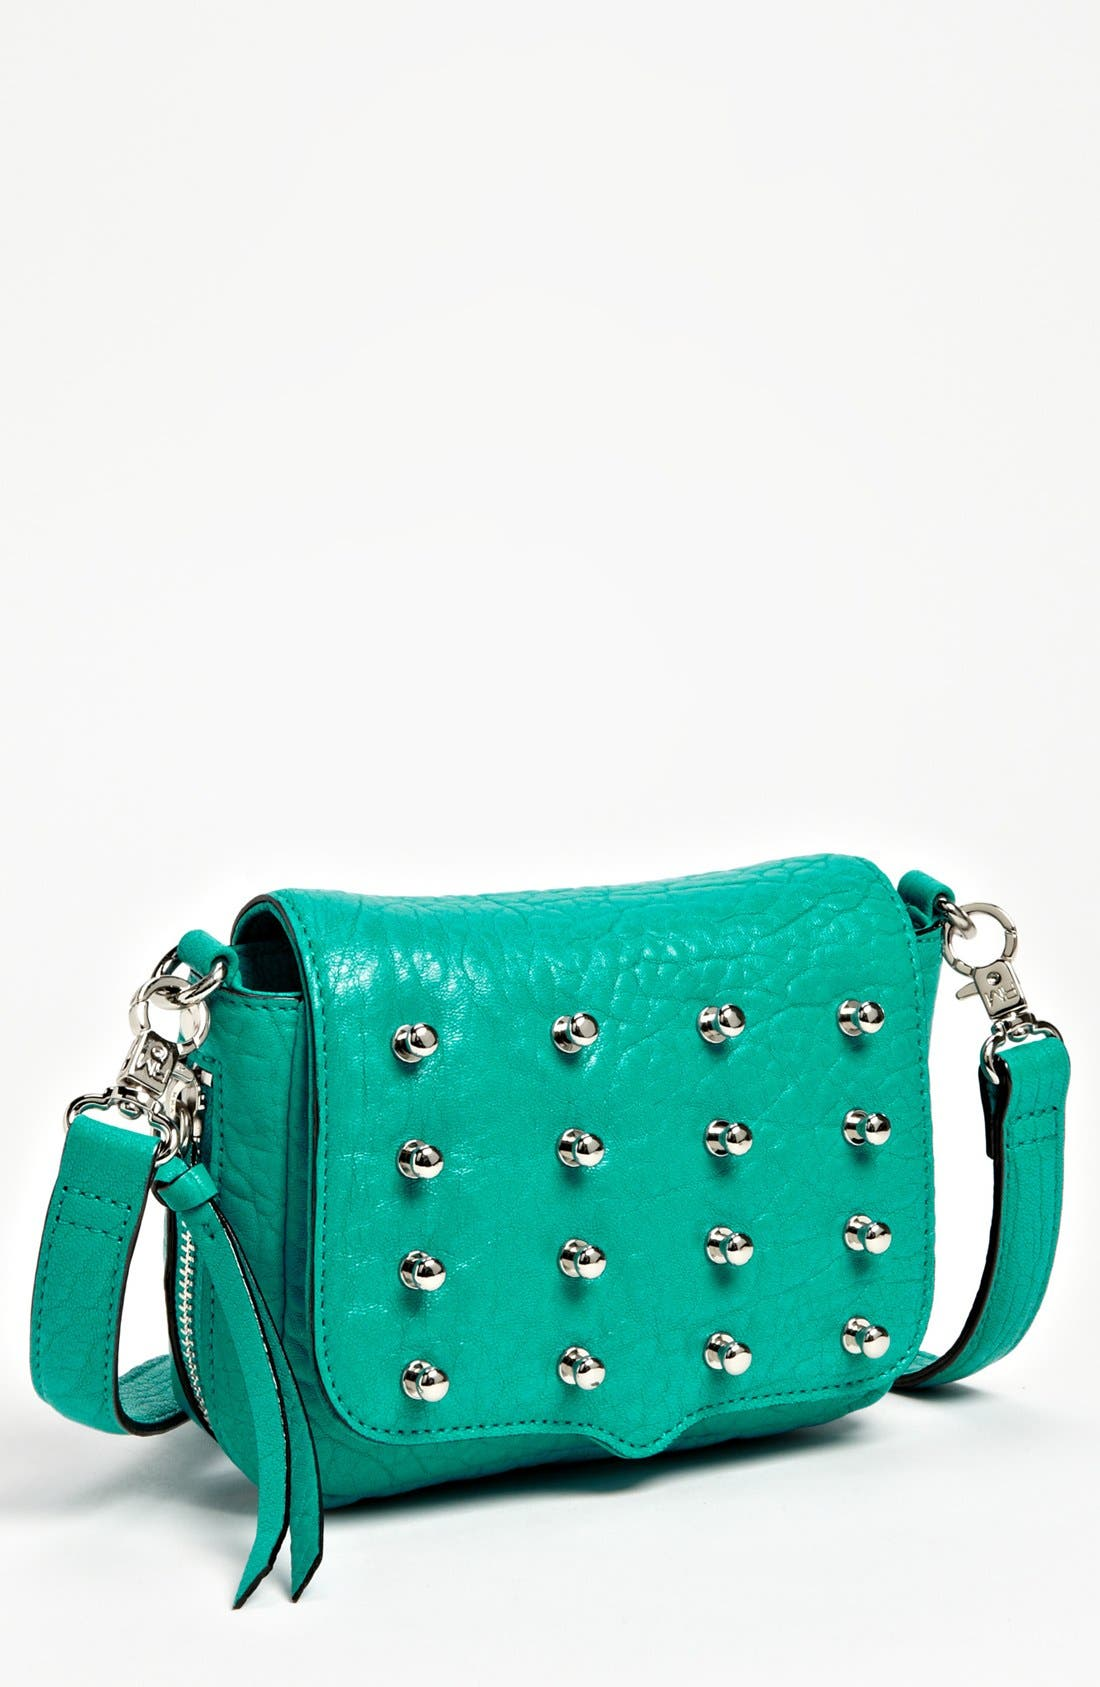 Main Image - Rebecca Minkoff 'Connor - Mini' Crossbody Bag